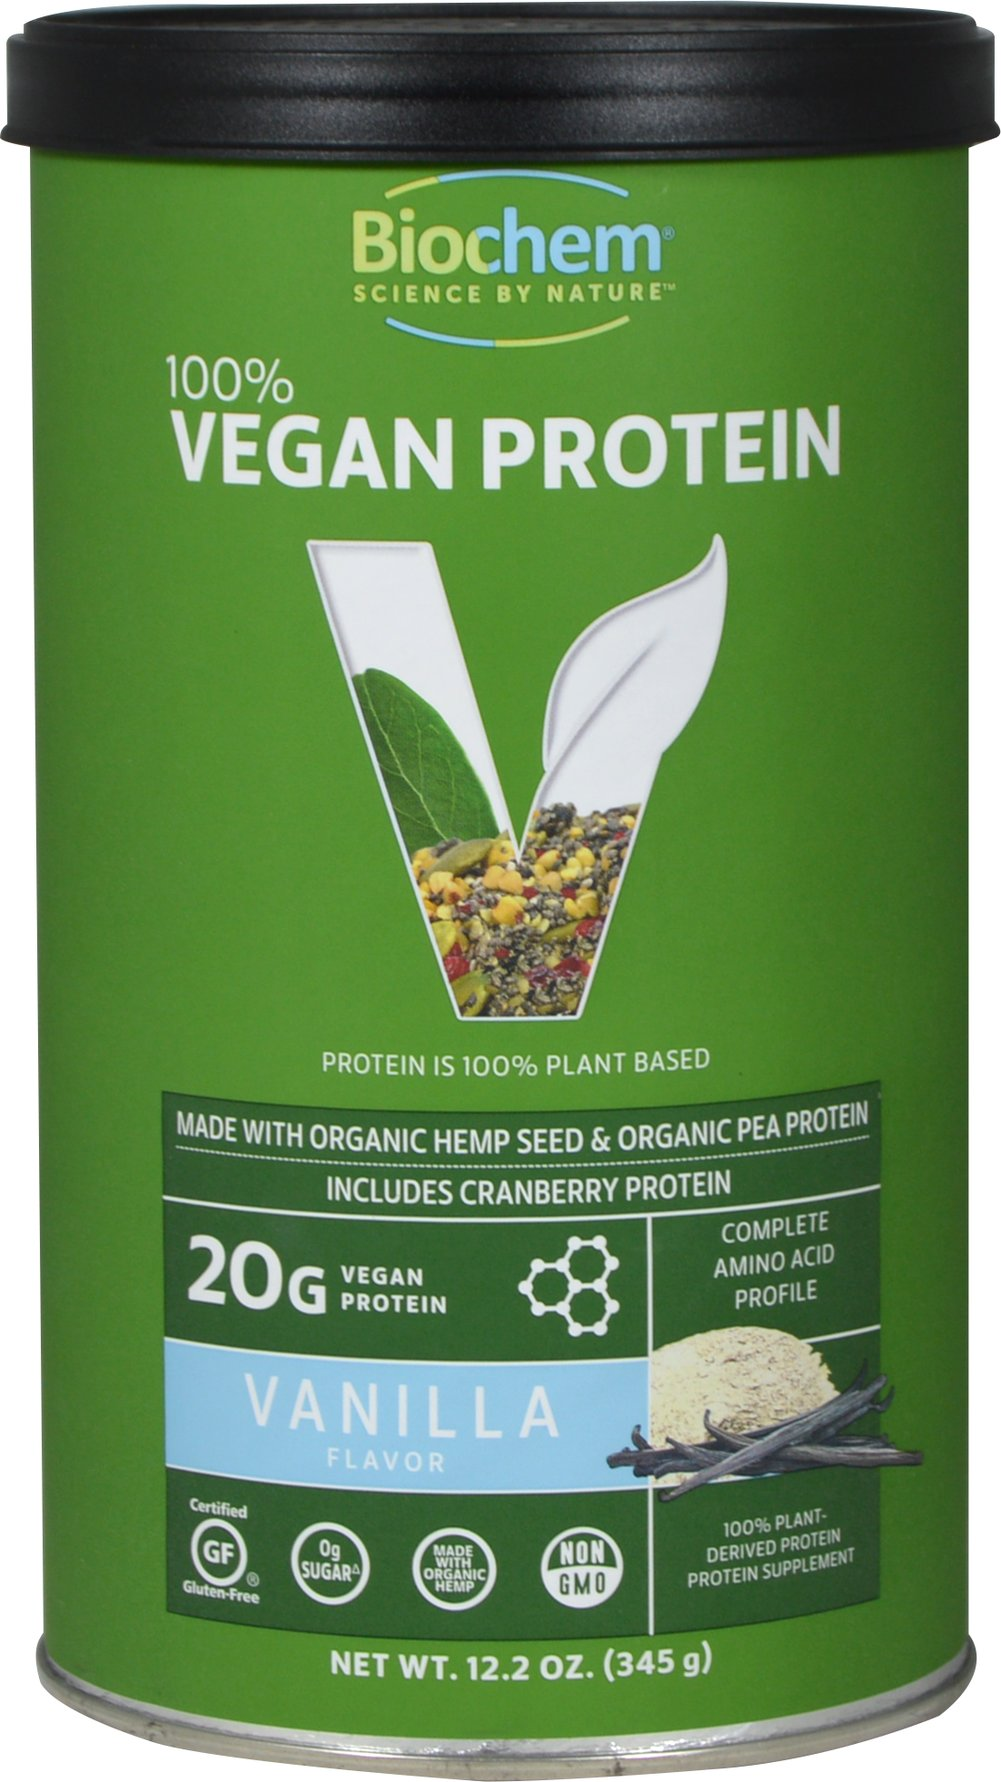 Vegan Protein Powder Vanilla <p><strong>From the Manufacturer's Label</strong></p><p>Lactose Free</p><p>Totally Vegan</p><p>Wheat & Gluten Free</p><p>Excellent Source of Protein</p><p></p><p>100% Vegan Protein Facts:</p><p>- Contains isolated, highly digestible pea protein, organic hemp protein, and cranberry protein.</p><p>- Pea protein is rich in amino acids such as L-L